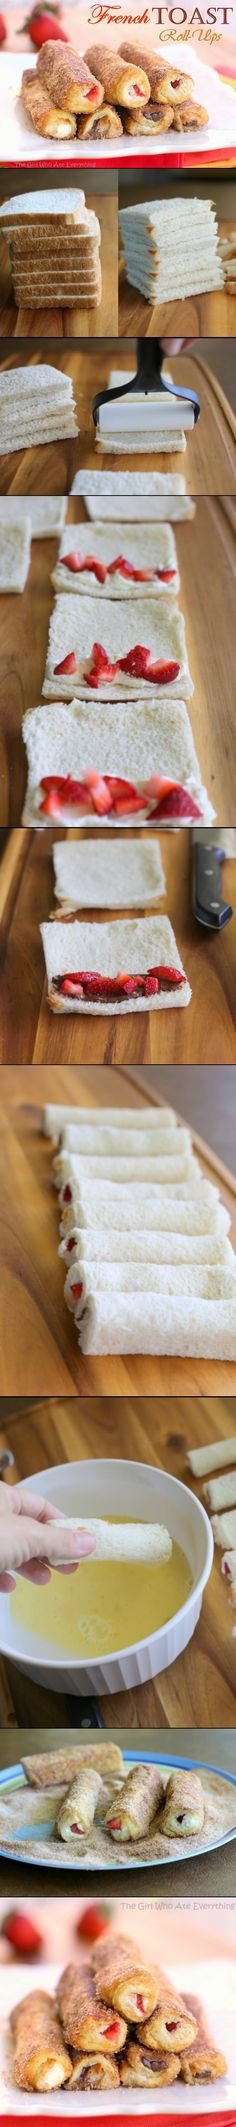 Easy and fun French toast roll ups. Fill them with cream cheese and berries or nutella and bananas. Instructions are in a different language but the photos make it pretty much self explanatory. Elegante Desserts, French Toast Roll Ups, Breakfast Recipes, Dessert Recipes, Delicious Desserts, Yummy Food, Love Food, Nutella, Kids Meals